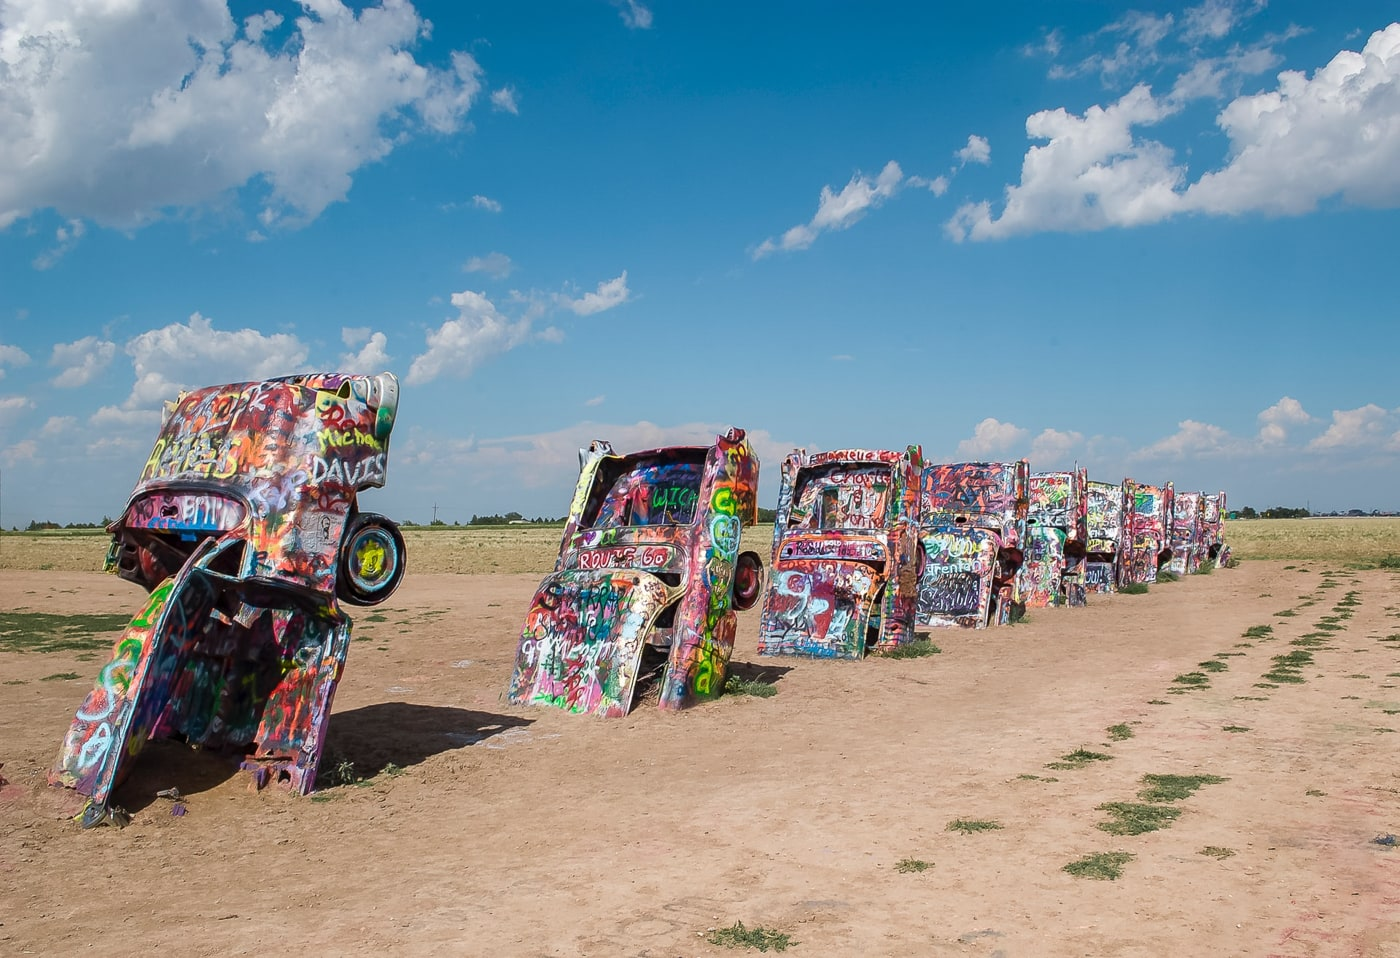 The best Texas roadside attractions to visit on a Texas road trip. Add these roadside oddities to your travel bucket list, itinerary, or route map!